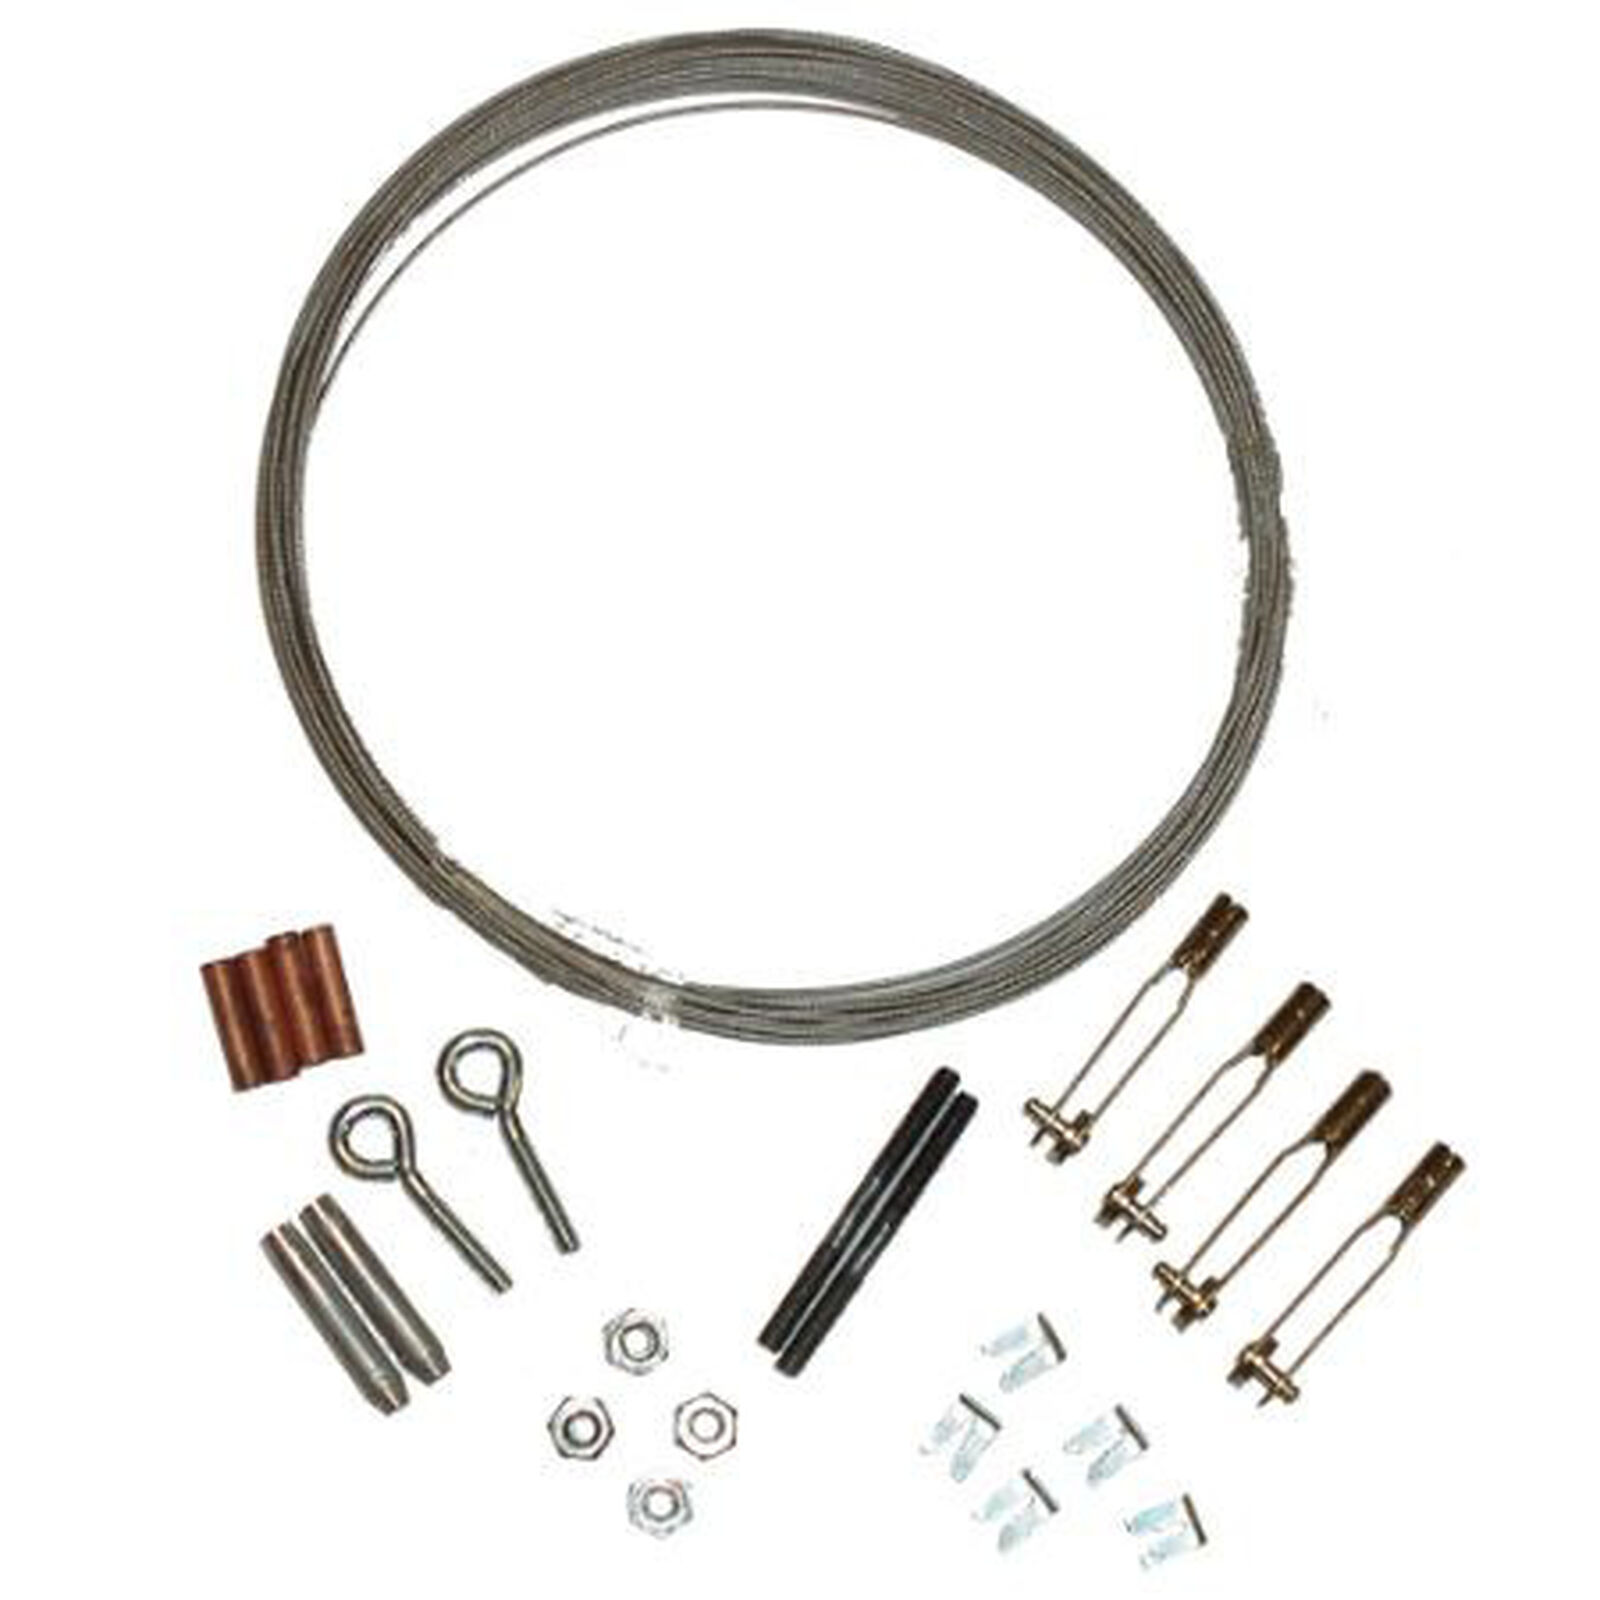 Pull Cable Kit with Turnbuckles,15'